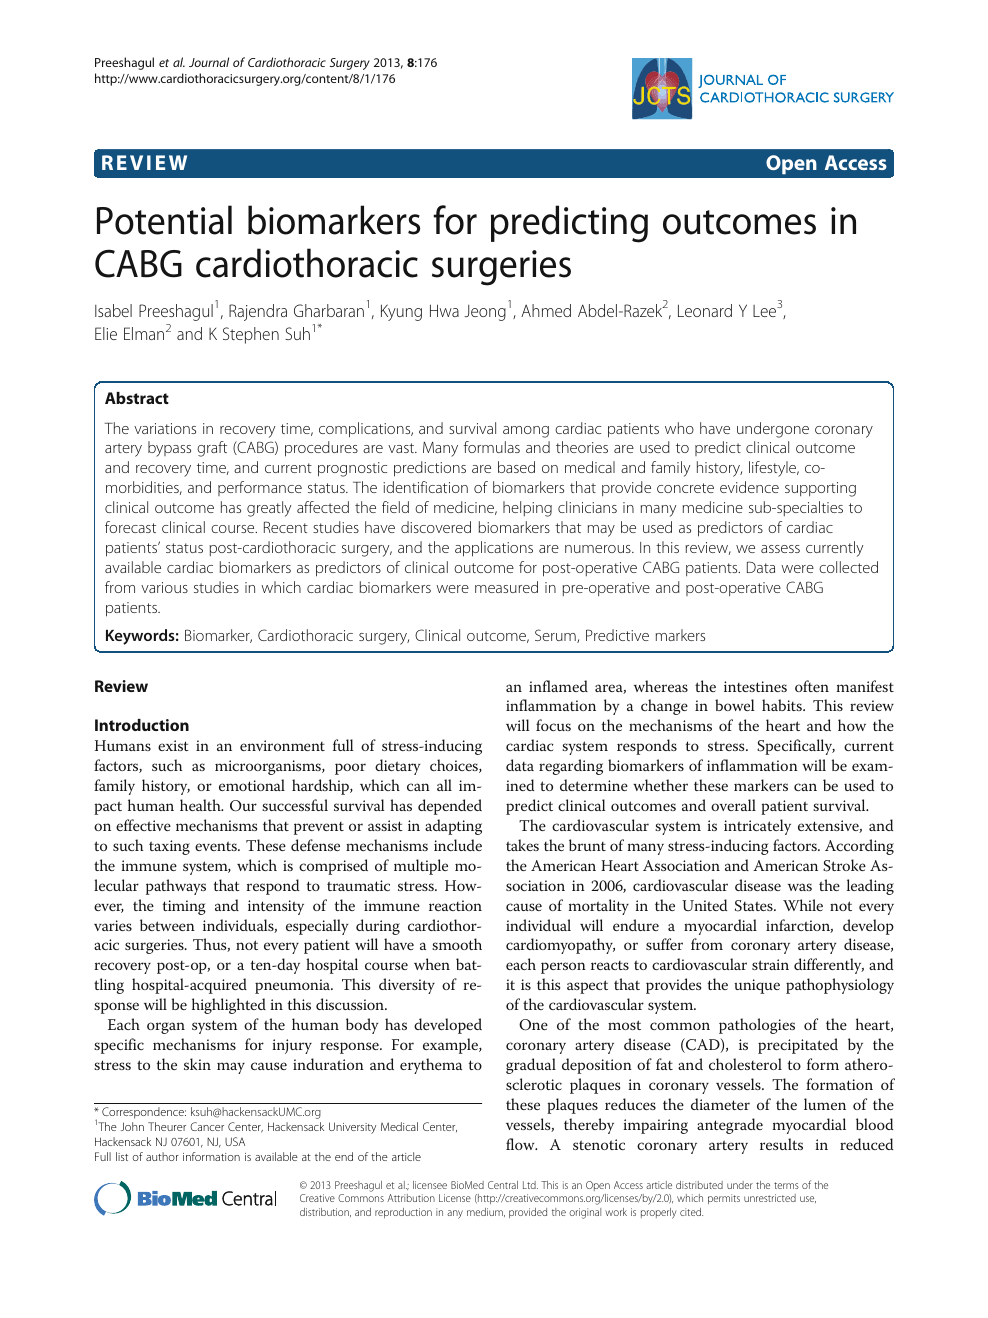 Potential Biomarkers For Predicting Outcomes In Cabg Cardiothoracic Surgeries Topic Of Research Paper In Clinical Medicine Download Scholarly Article Pdf And Read For Free On Cyberleninka Open Science Hub